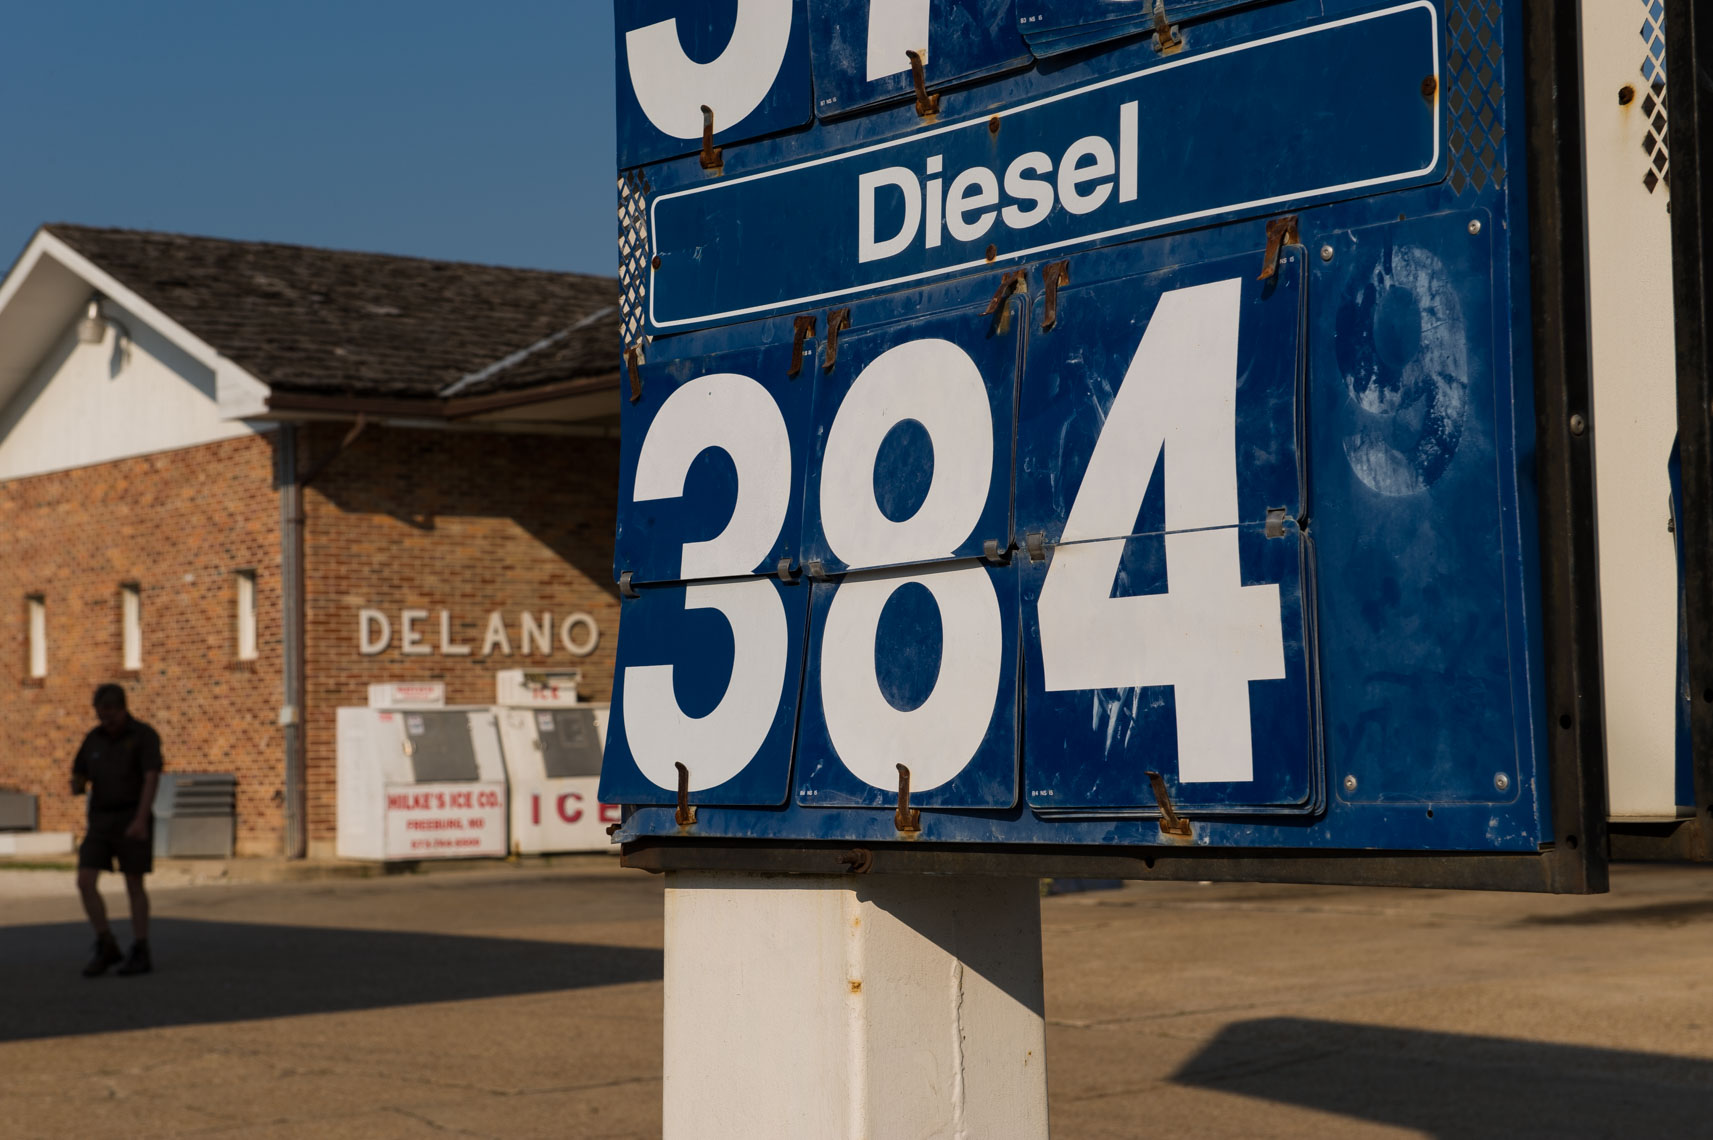 Jay Delano: Passing On Family Oil